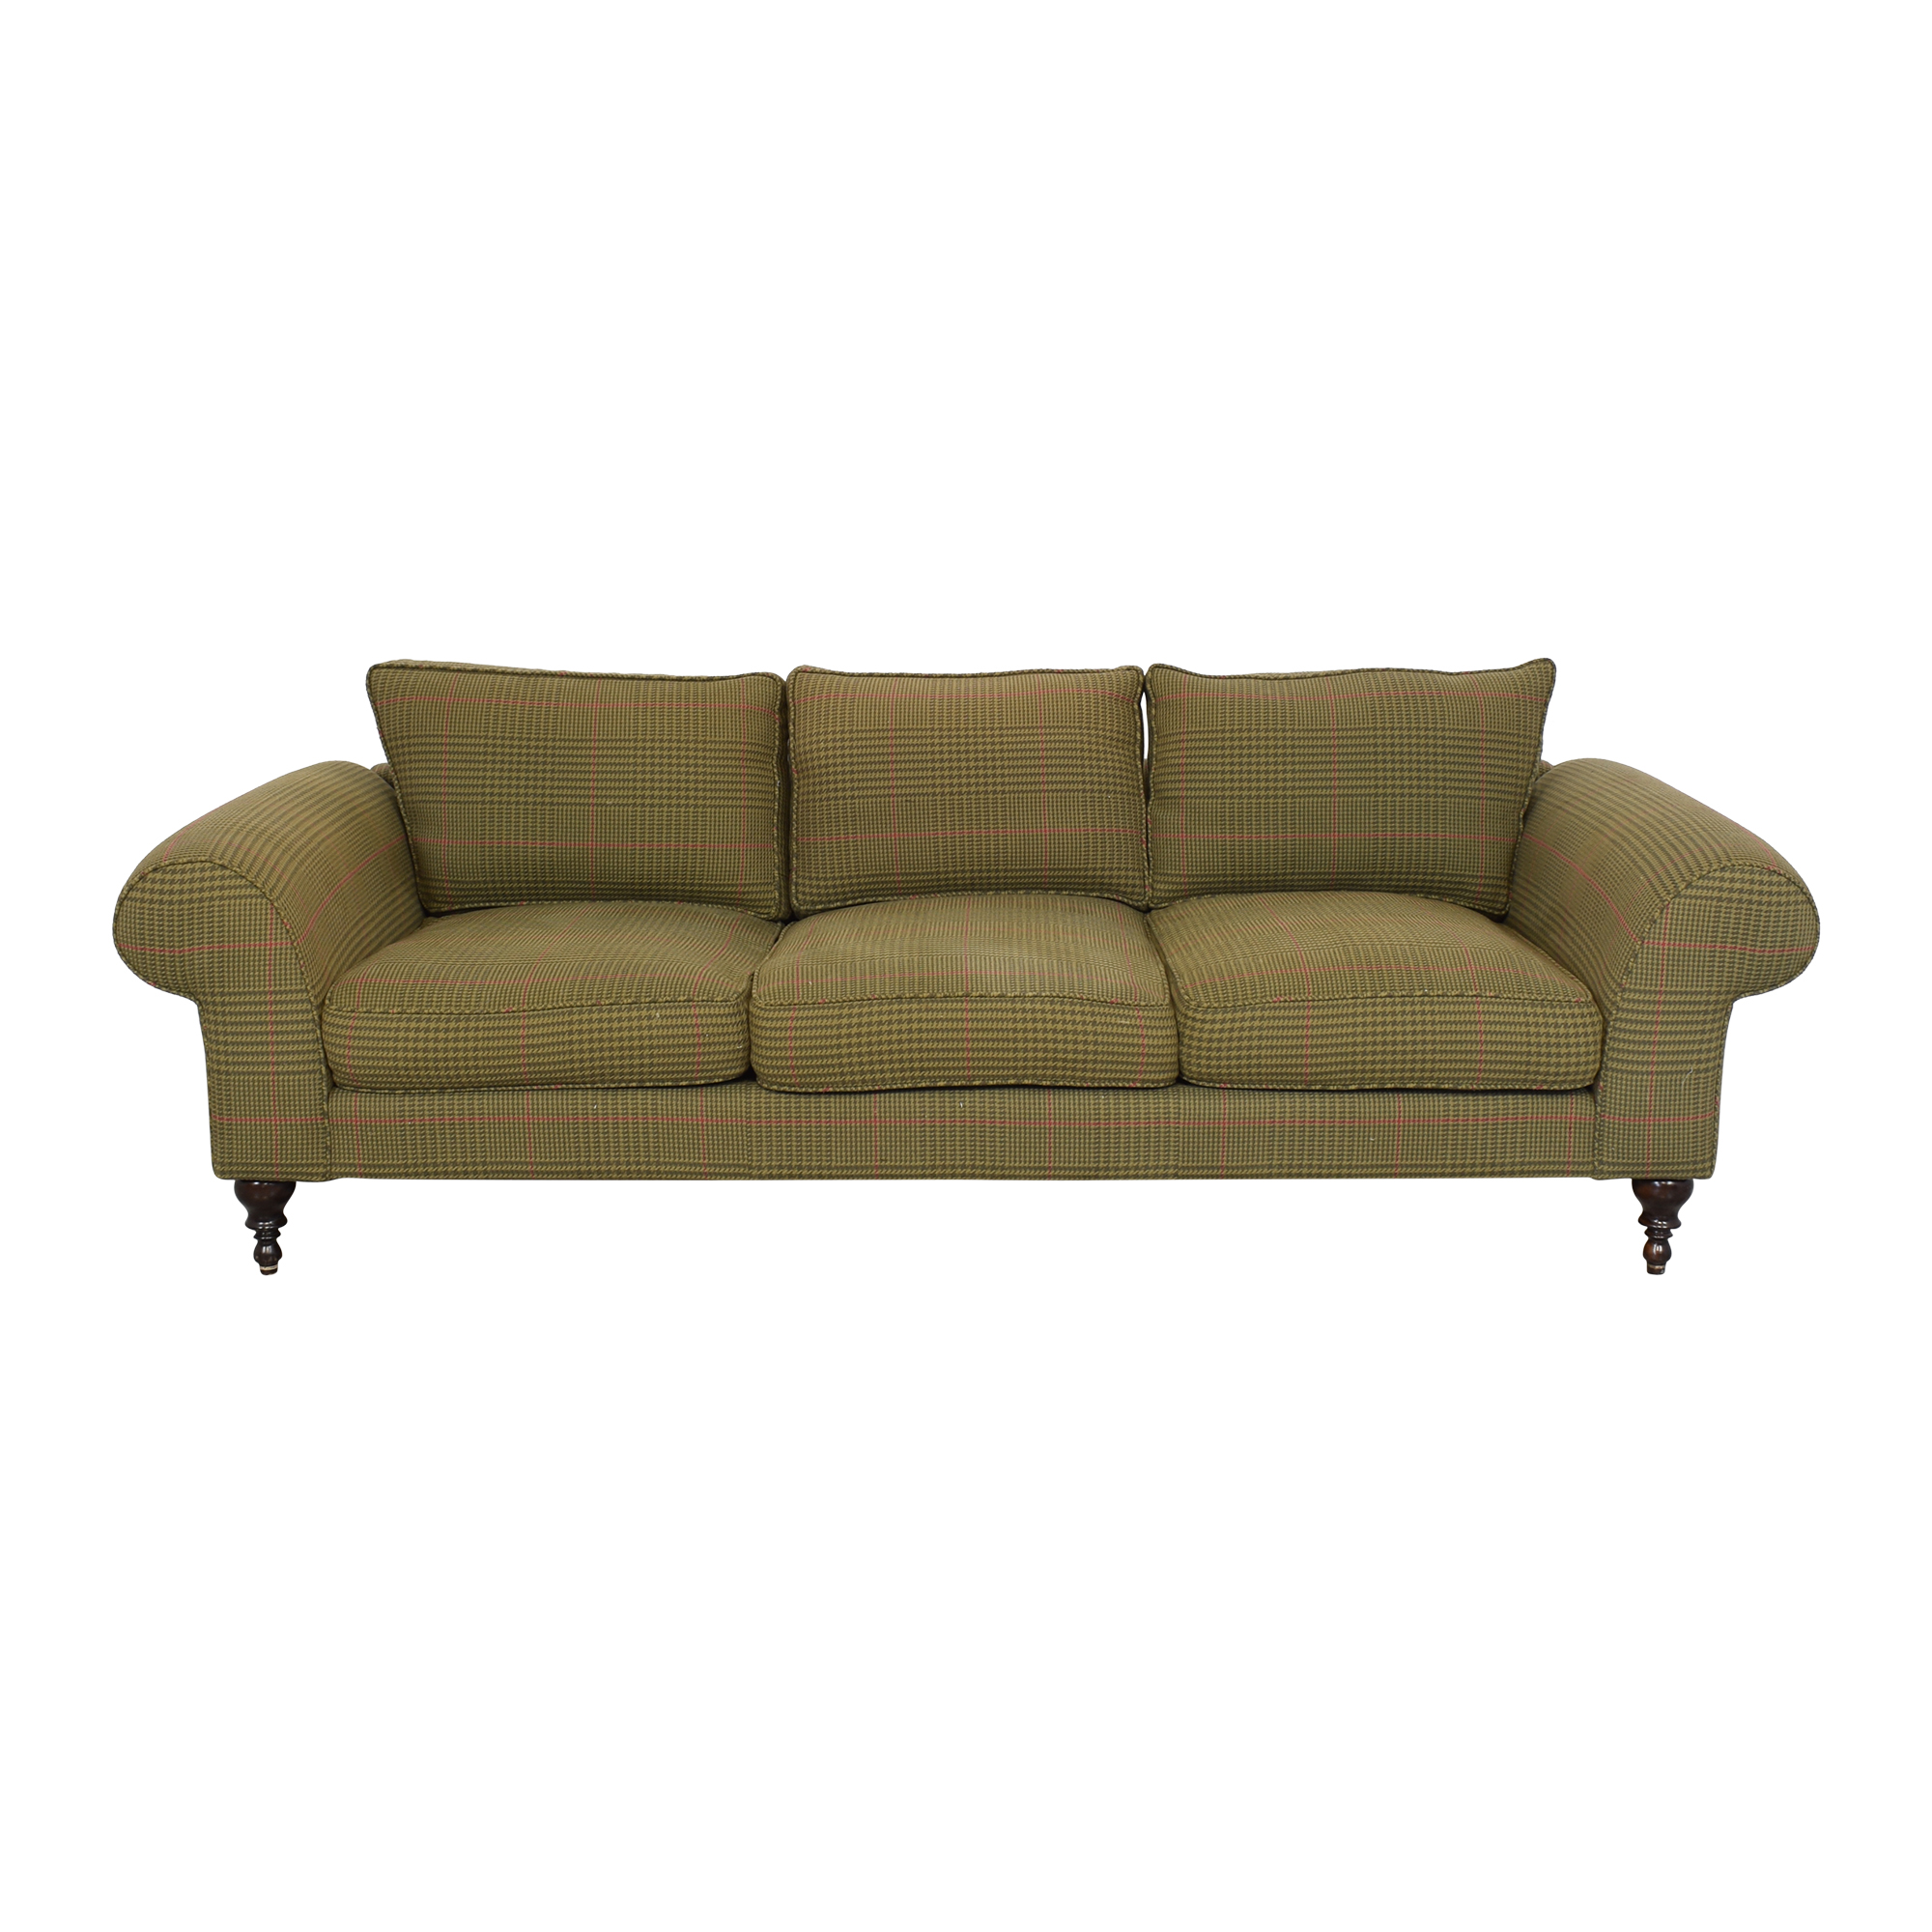 Roll Arm Three Seat Sofa / Classic Sofas